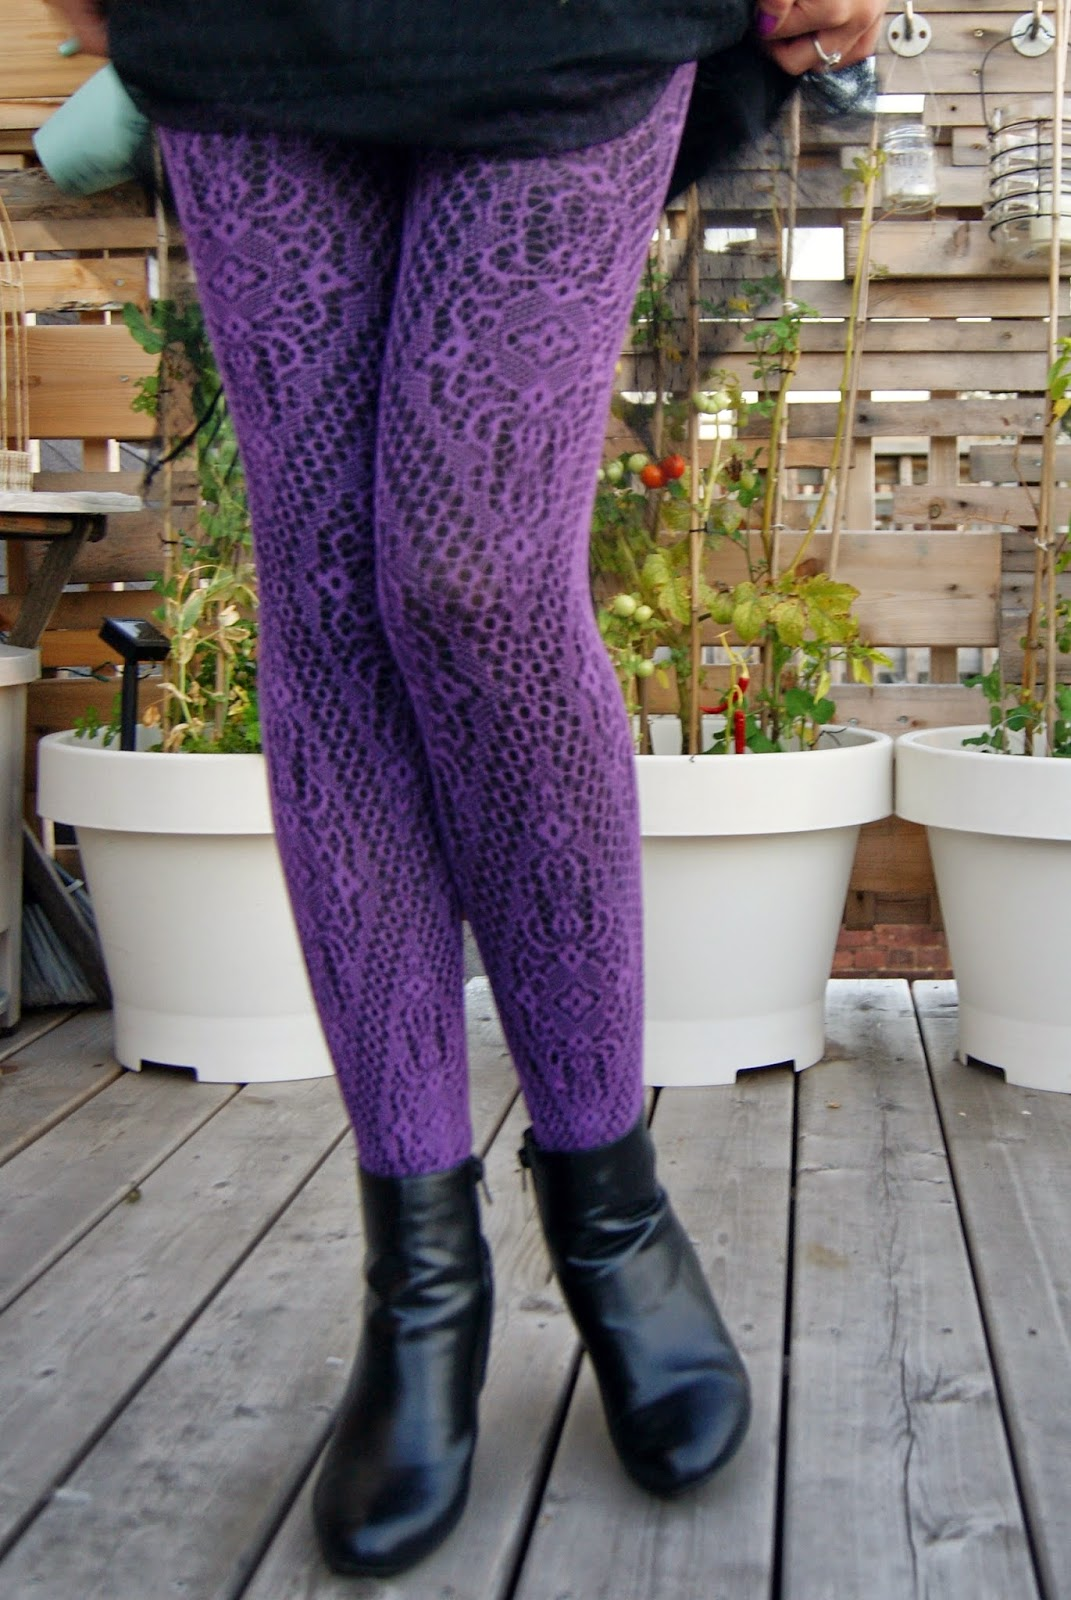 Fashion Obsession + Trend Alert: Layering tights, legwear, pattern, fashion, style, styletips, shopping, the purple scarf, melanieps, toronto, ontario, canada